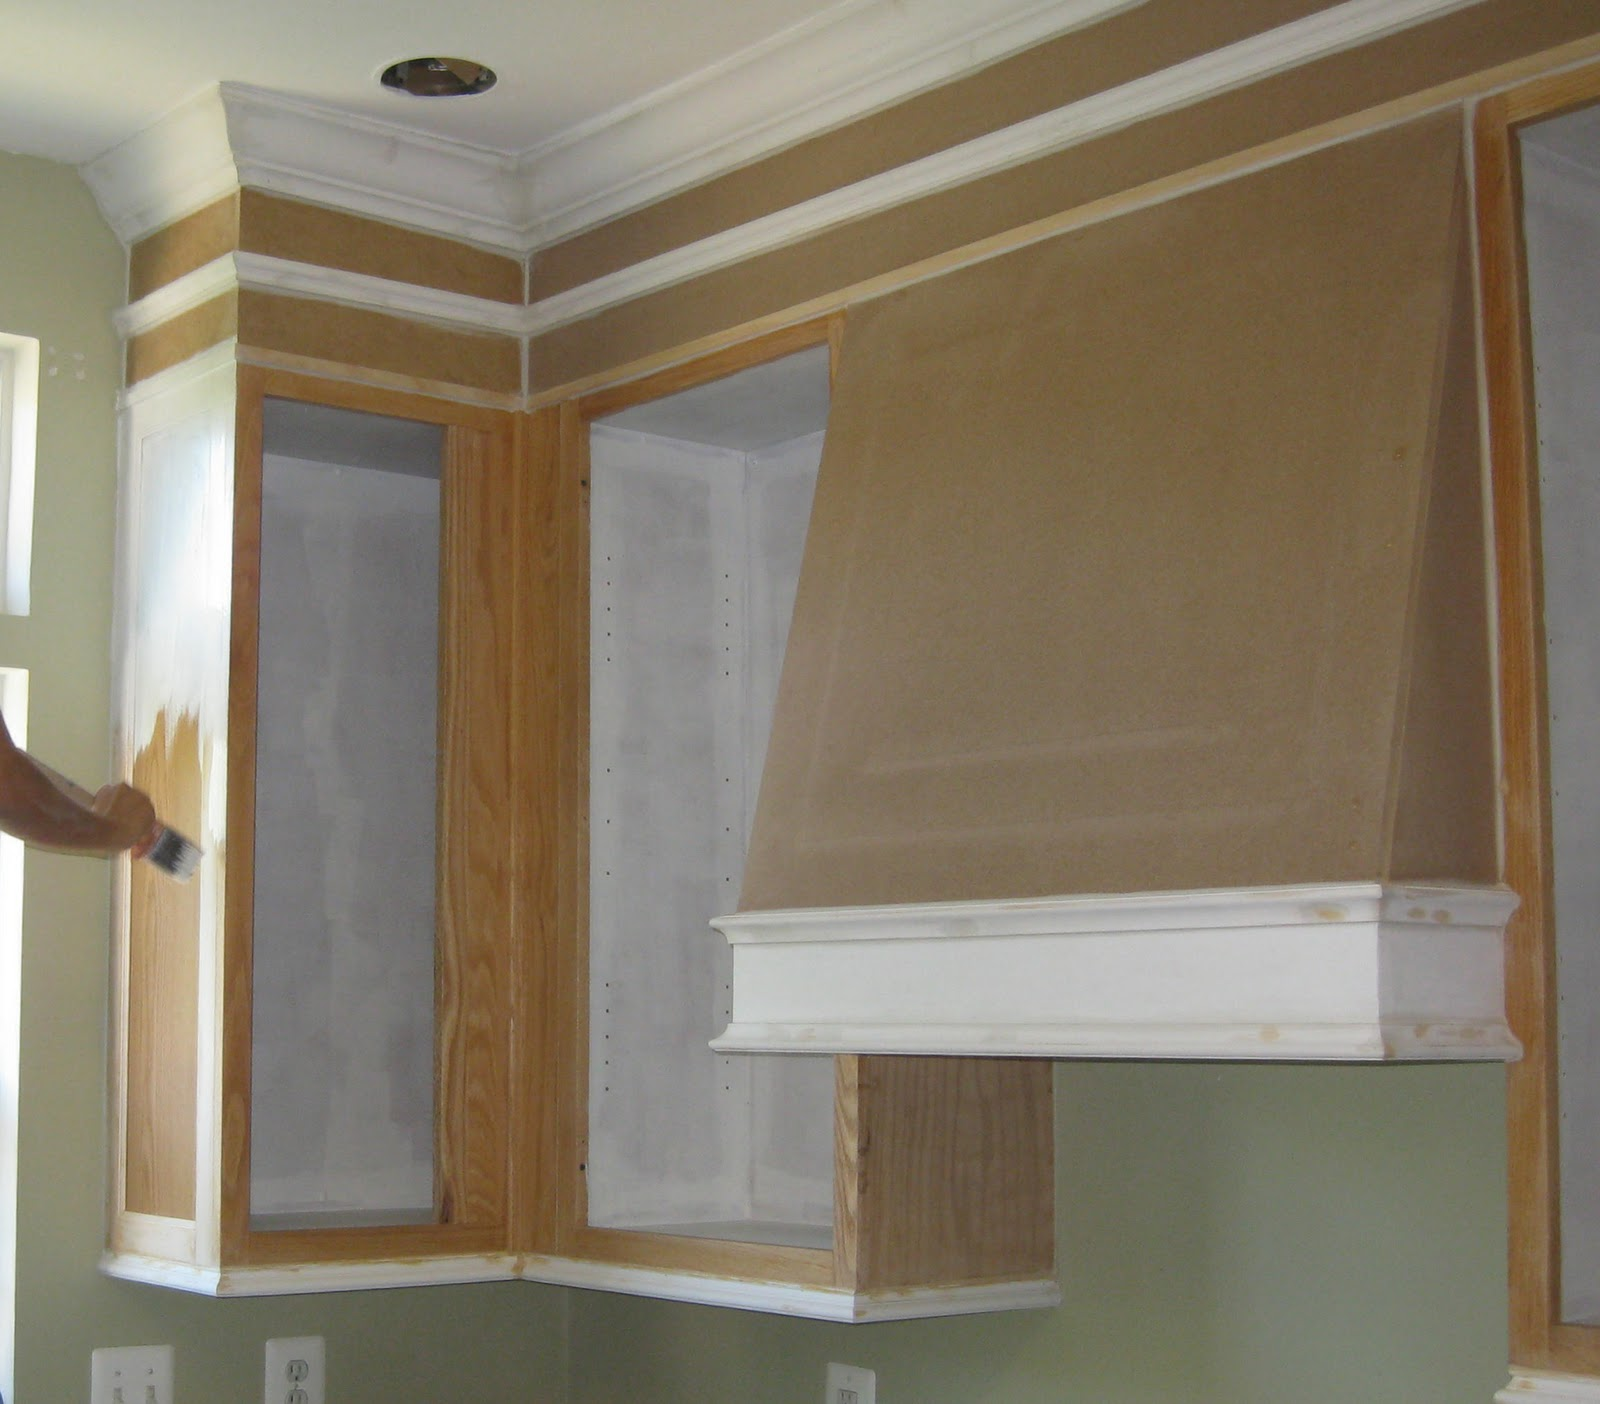 Painting The Kitchen Cabinets - Remodelando la Casa on